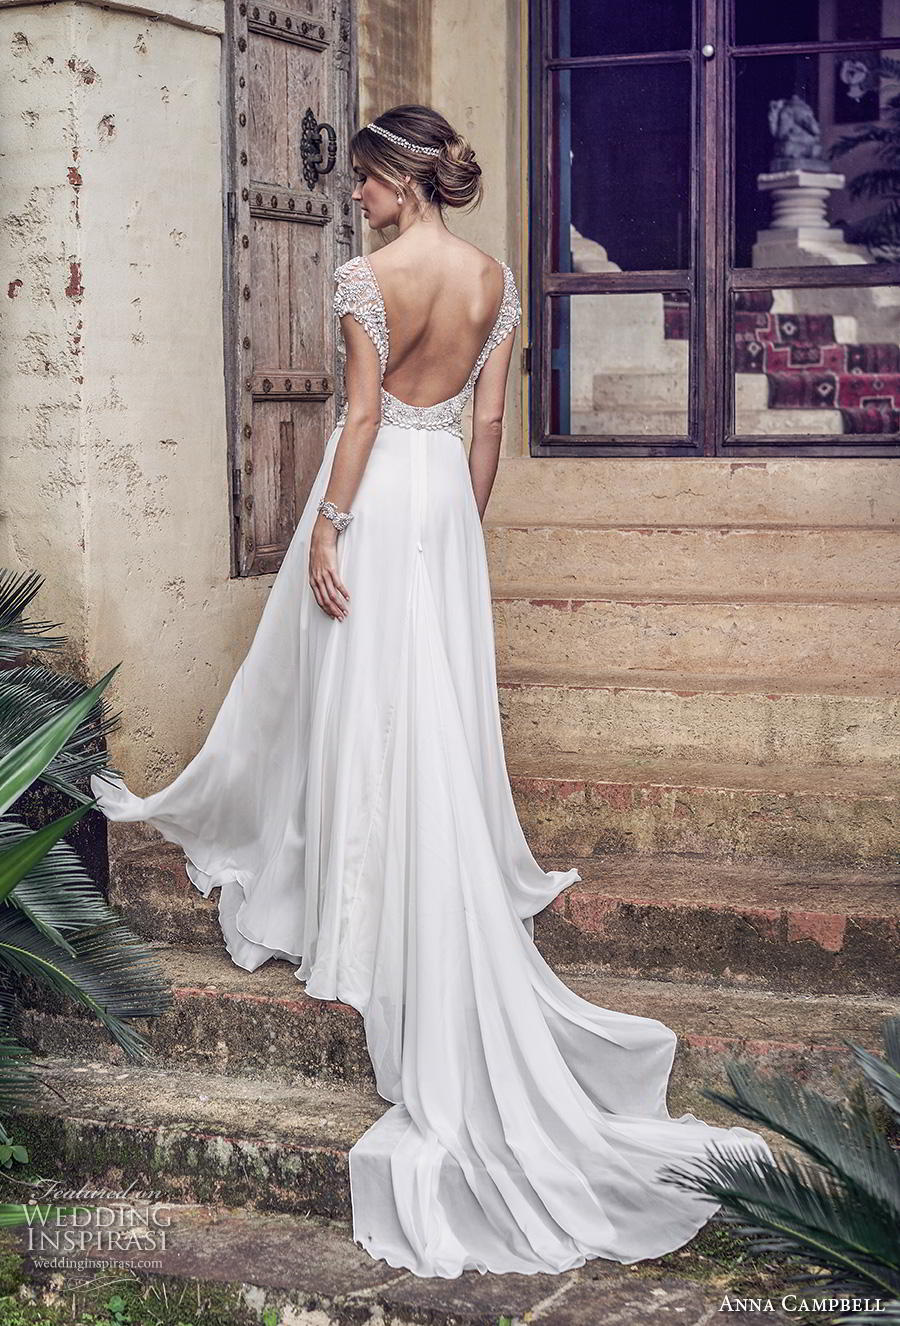 anna campbell 2019 bridal cap sleeves v neck heavily embellished bodice glitzy romantic soft a line wedding dress backless scoop back chapel train (3) bv